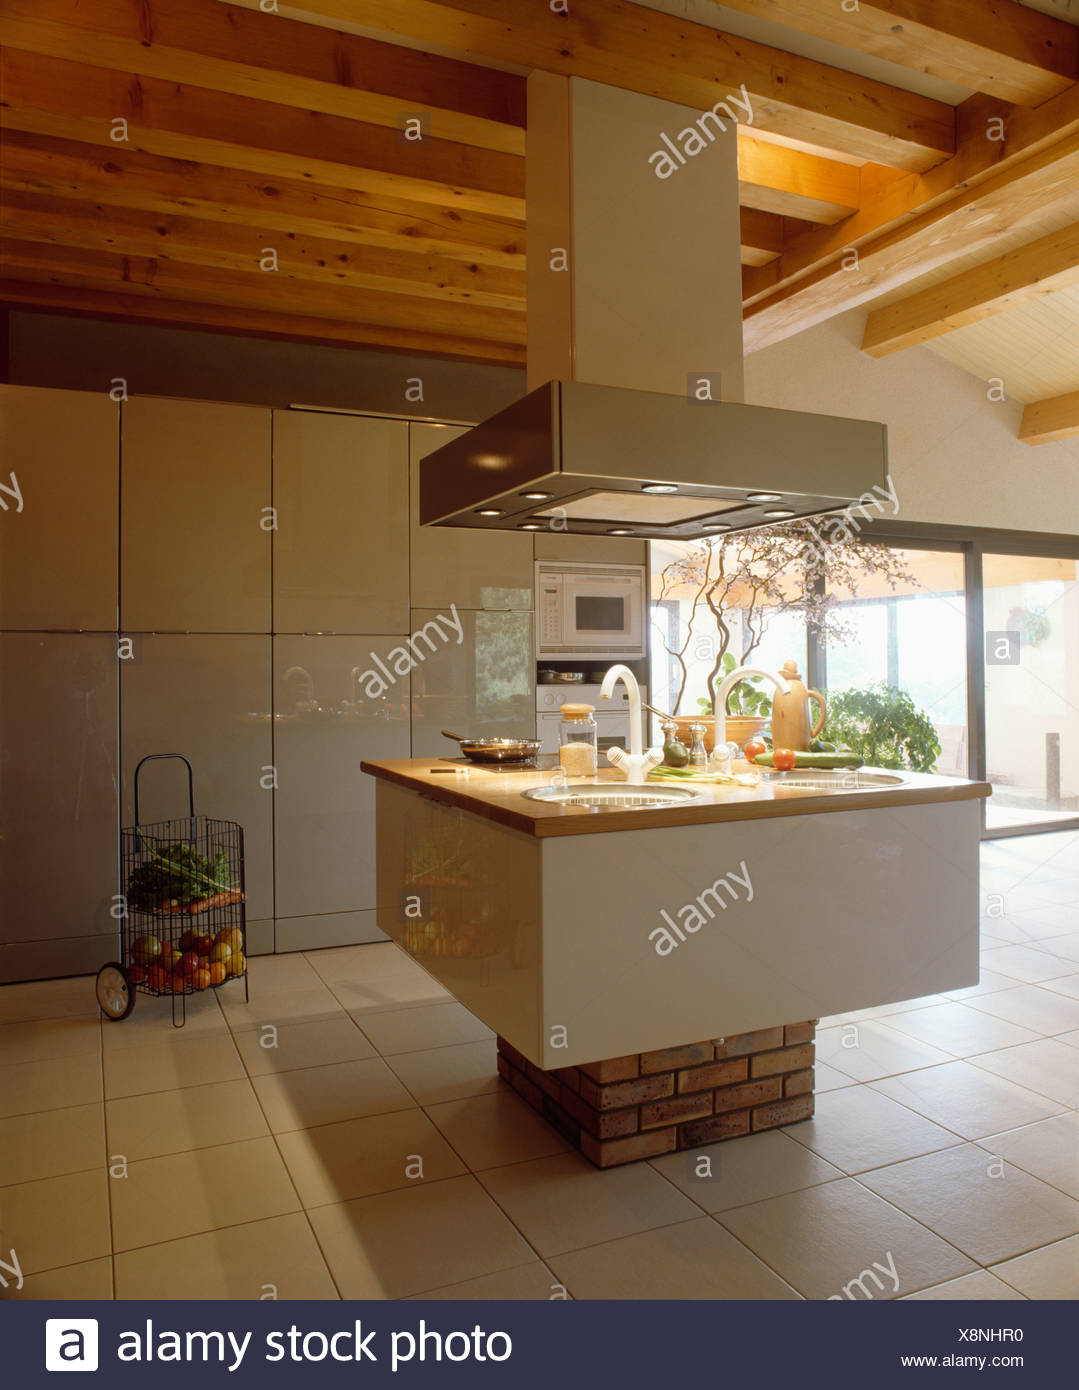 Large Extractor Fan Above Sink In Island Unit In Modern White Kitchen With Wooden Ceiling Beams Stock Photo Alamy